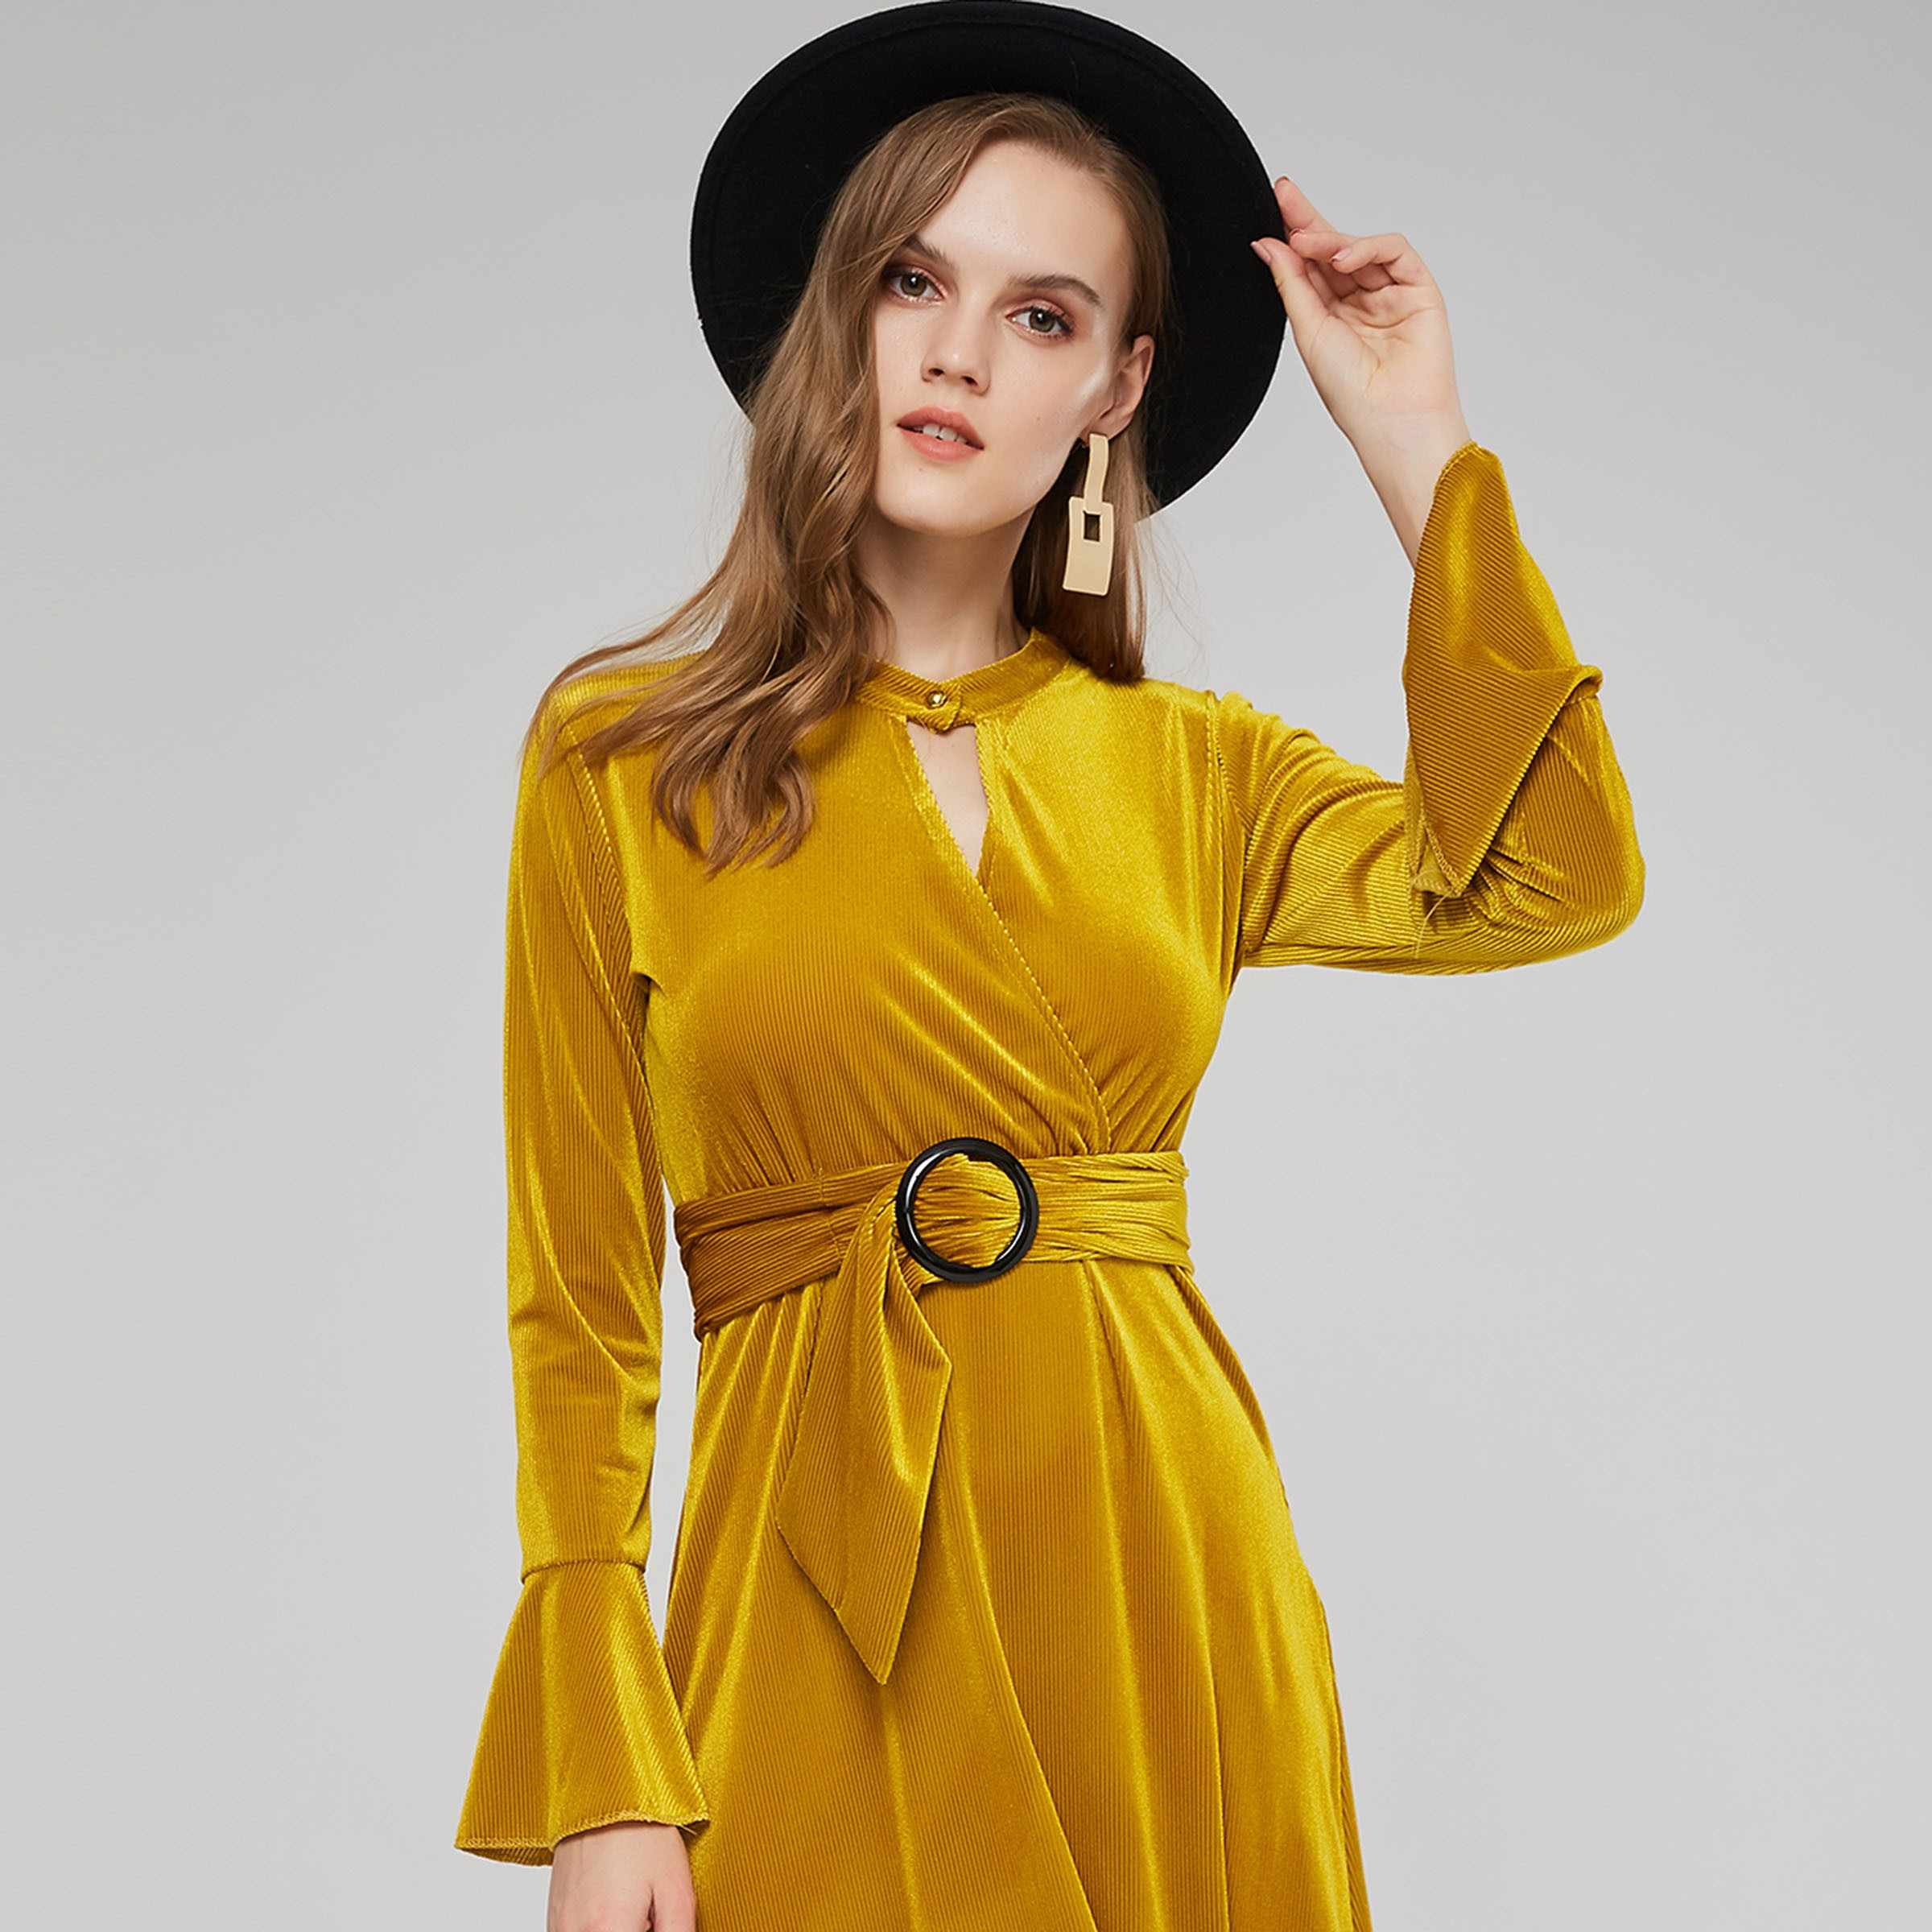 f123006131 ... Sisjuly Evening Party Thread Striped Yellow Velvet Swing Dress Women  Spring Winter Lace Up Buckle Belt